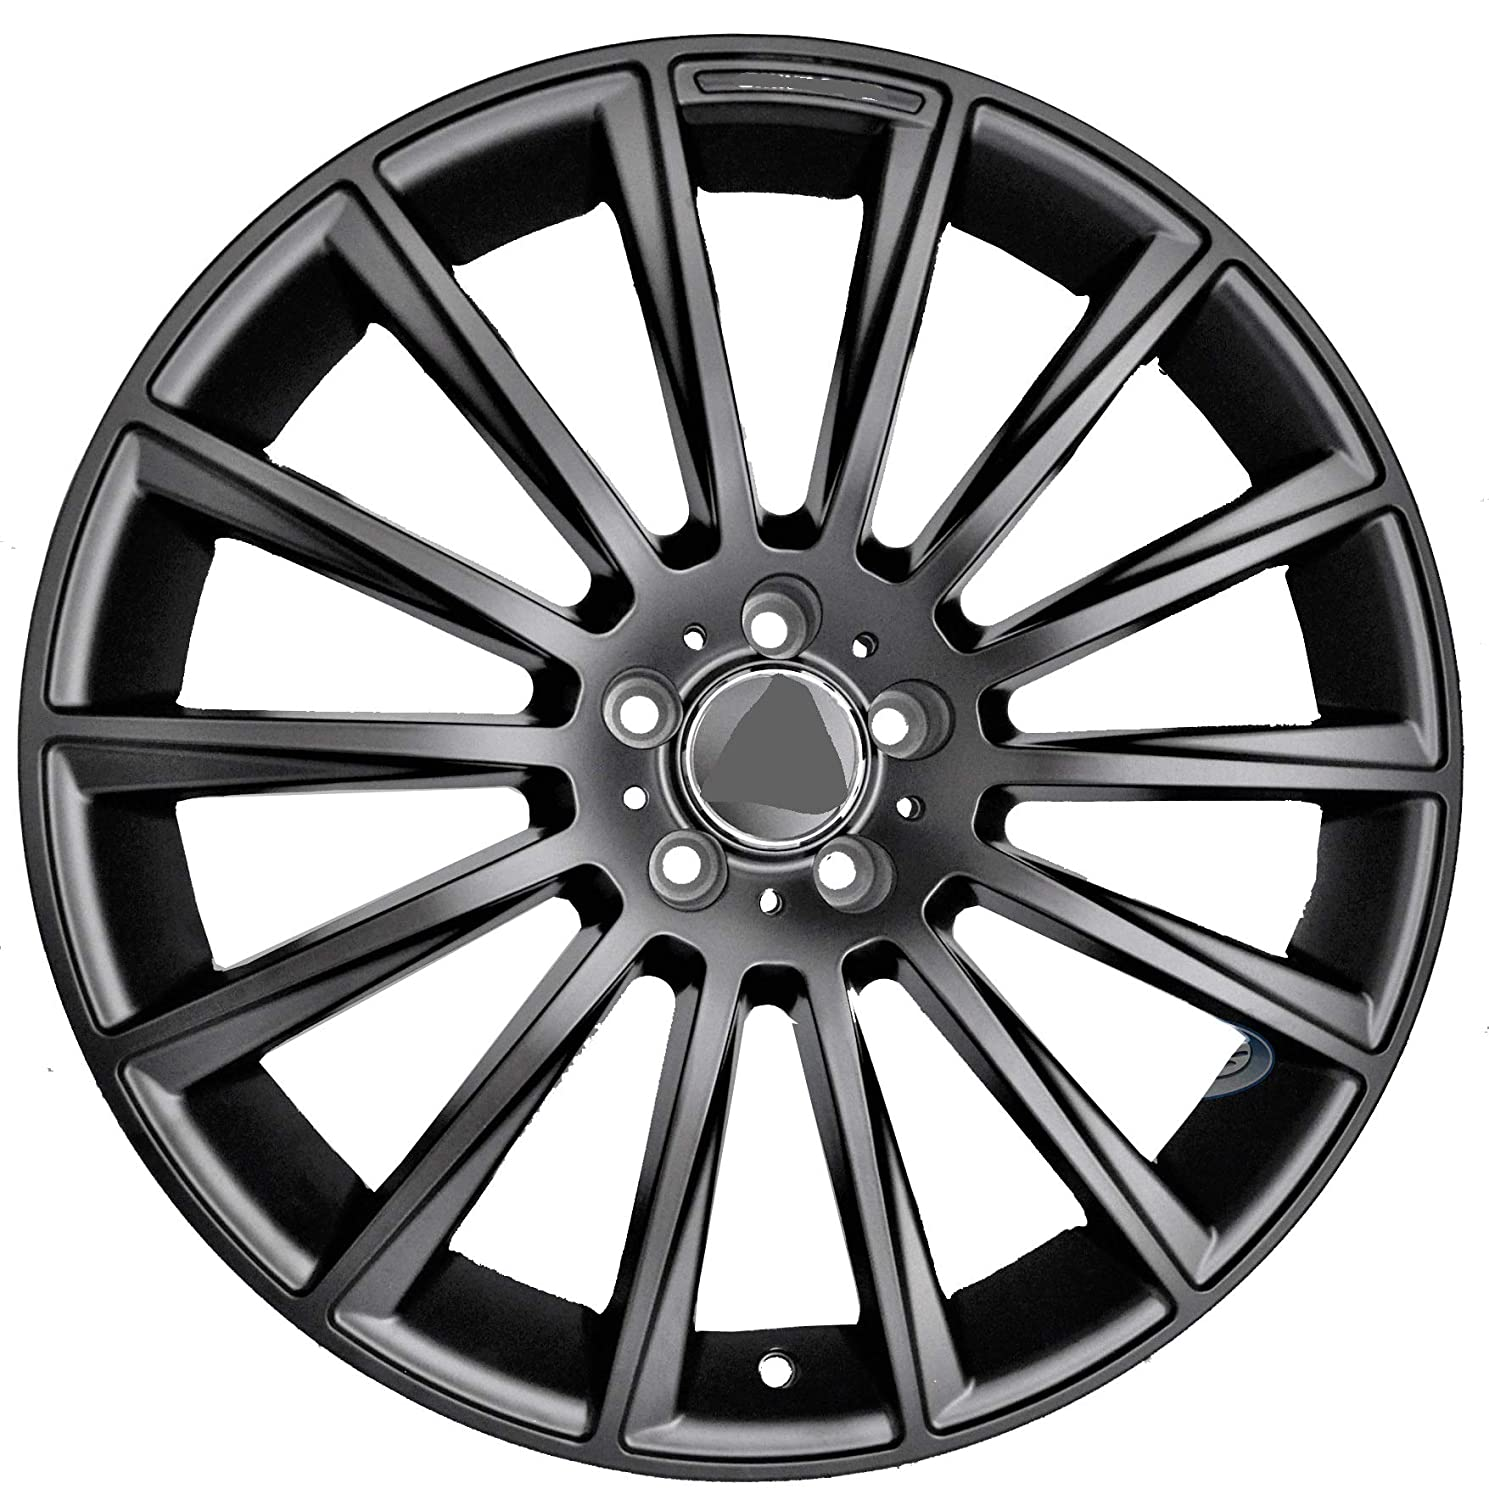 amazon 18 inch black staggered wheels rims full set of 4 fit 2013 E350 Custom amazon 18 inch black staggered wheels rims full set of 4 fit for mercedes benz c e r s class cl glk 1241 mb automotive